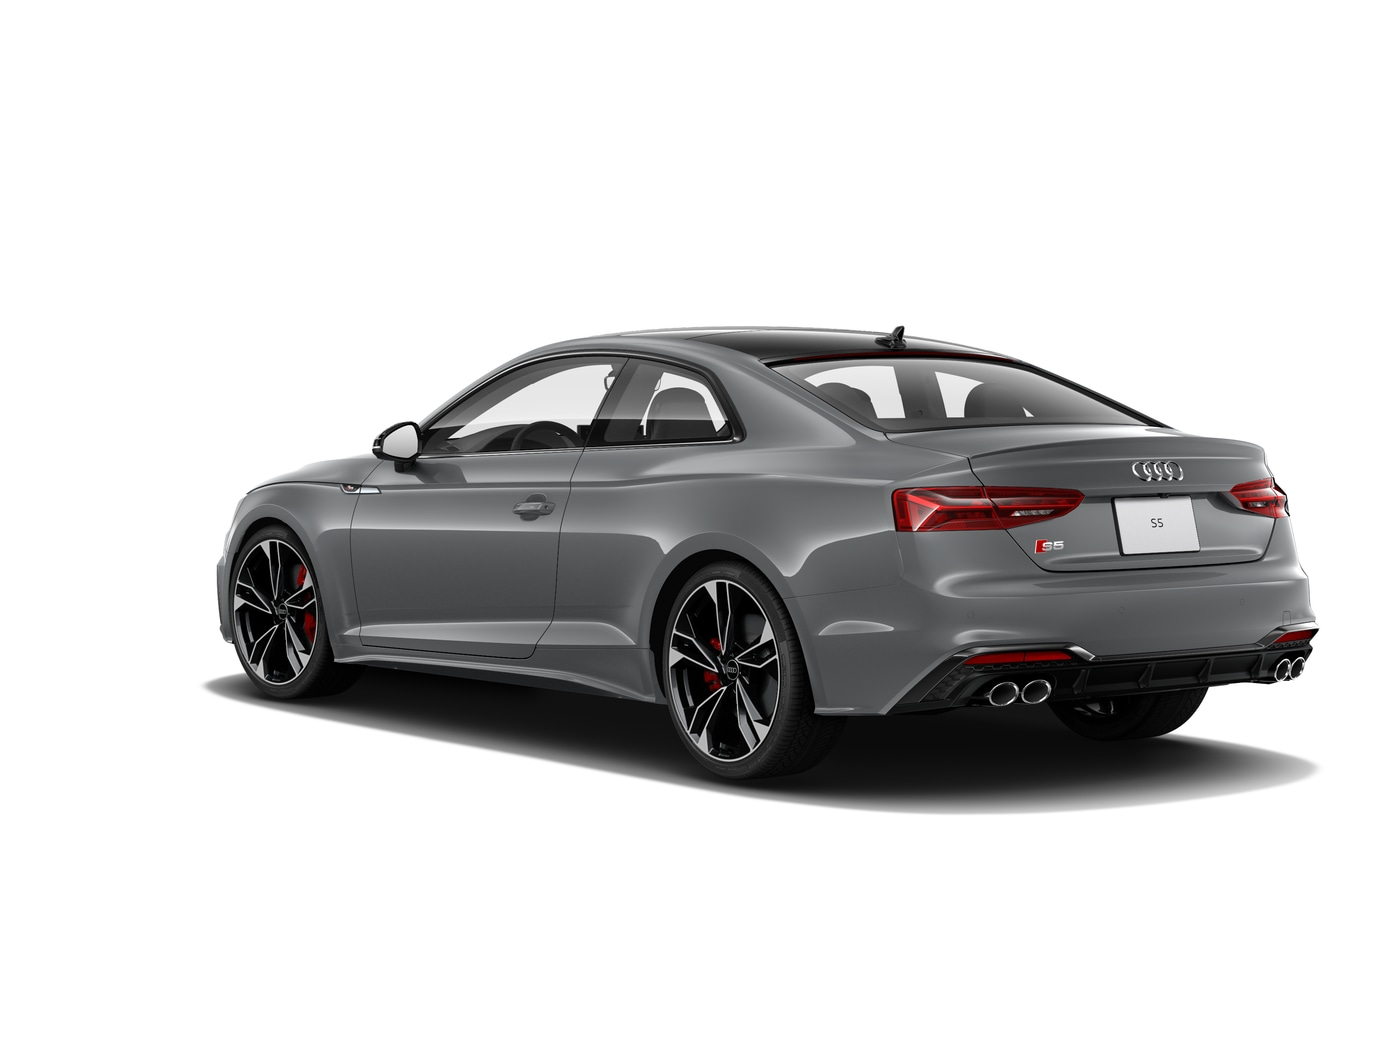 New 2021 Audi S5 3 0t Premium Plus For Sale In Edison Nj Vin Waup4af56ma020164